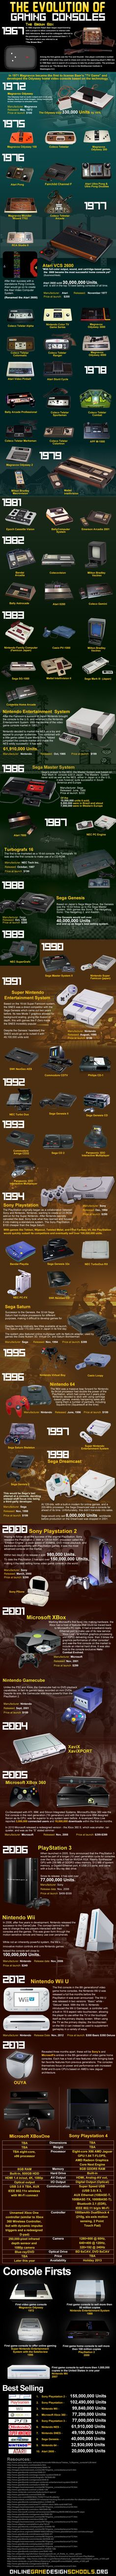 The Evolution of Gaming Consoles: From 1967 to 2013 [Pic]